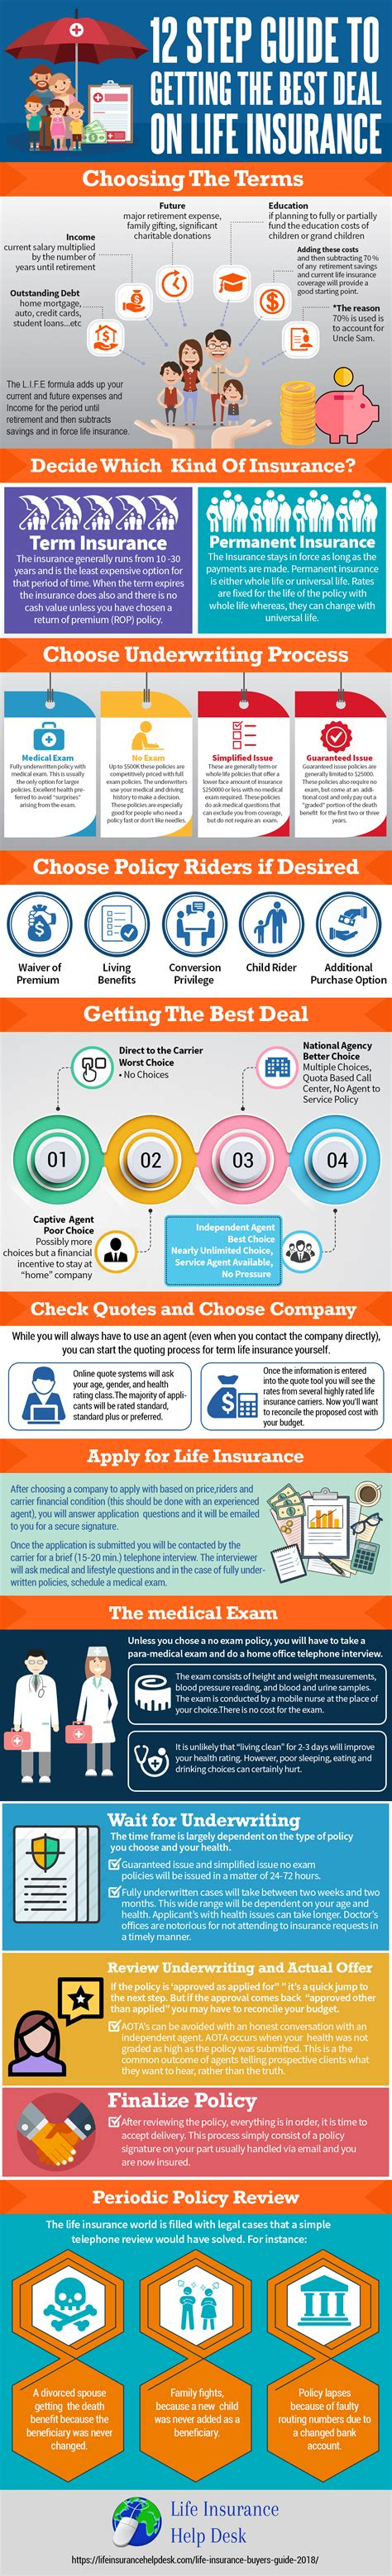 Best rating & offers homeowner's insurance, auto insurance, personal protection, and life insurance. 12 Steps To Getting The Best Deal On Life Insurance   Infographic   The Life Insurance Help Desk